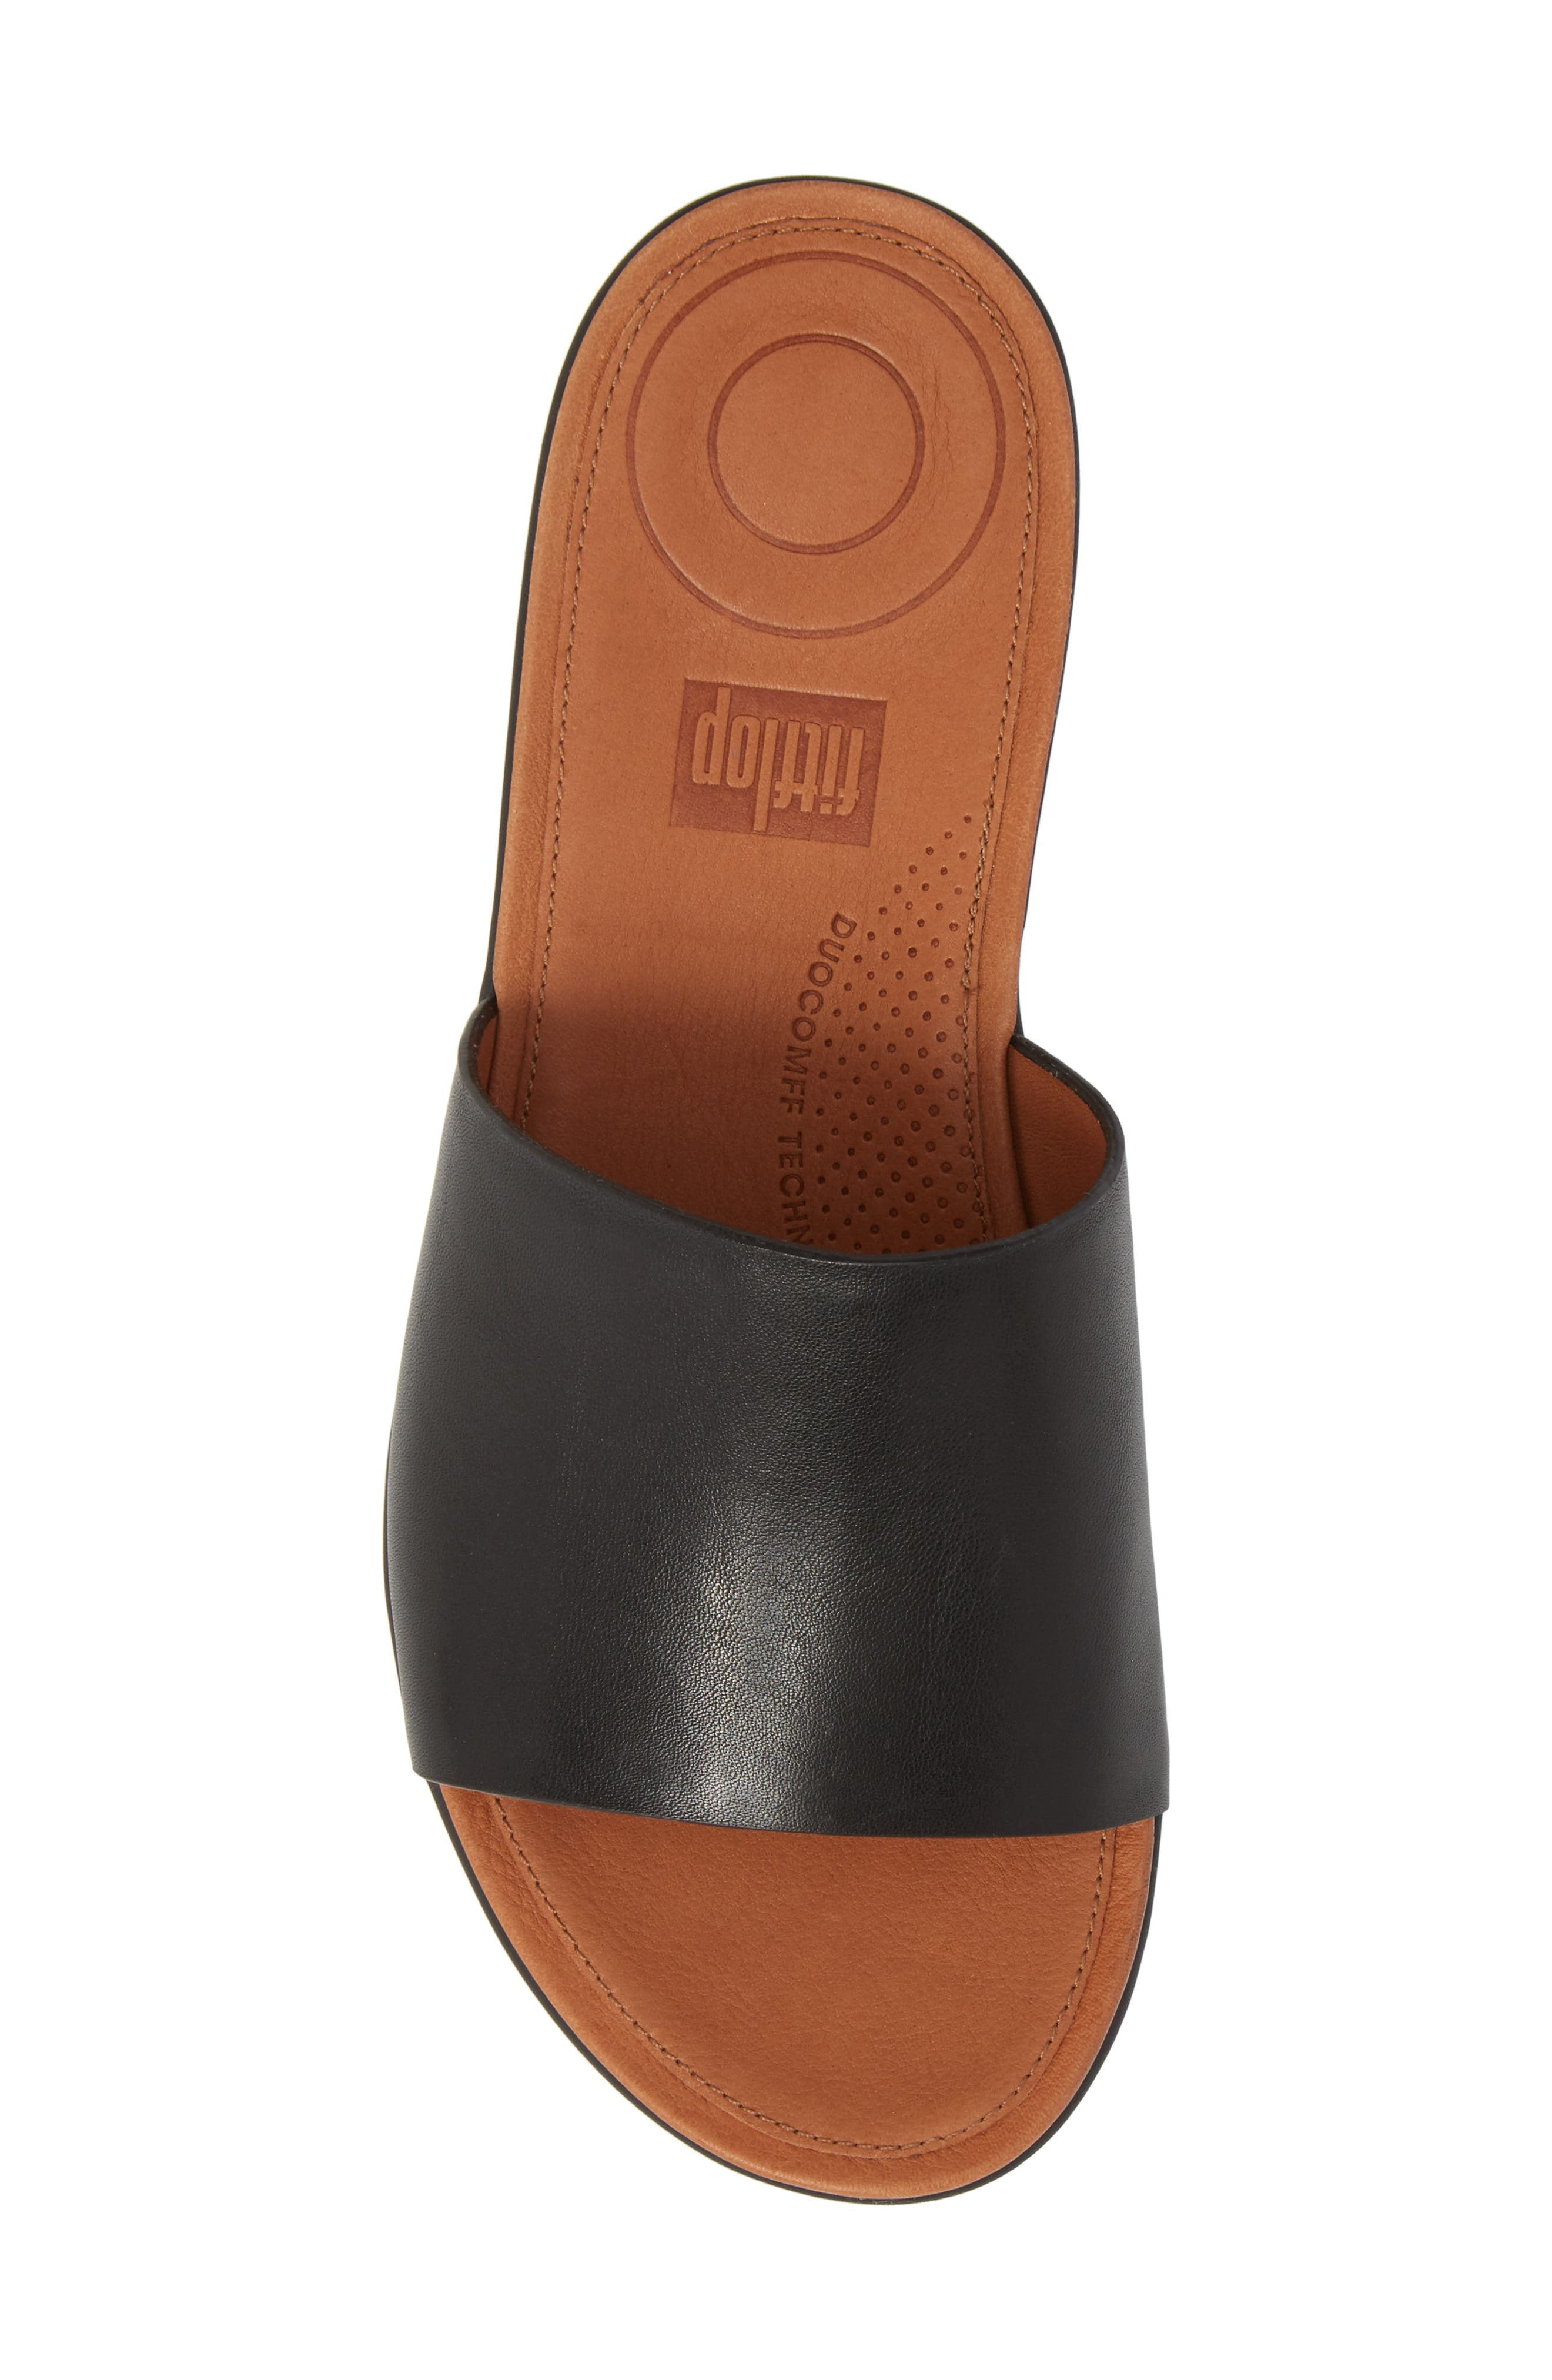 Sola Sandal,                             Alternate thumbnail 5, color,                             BLACK LEATHER